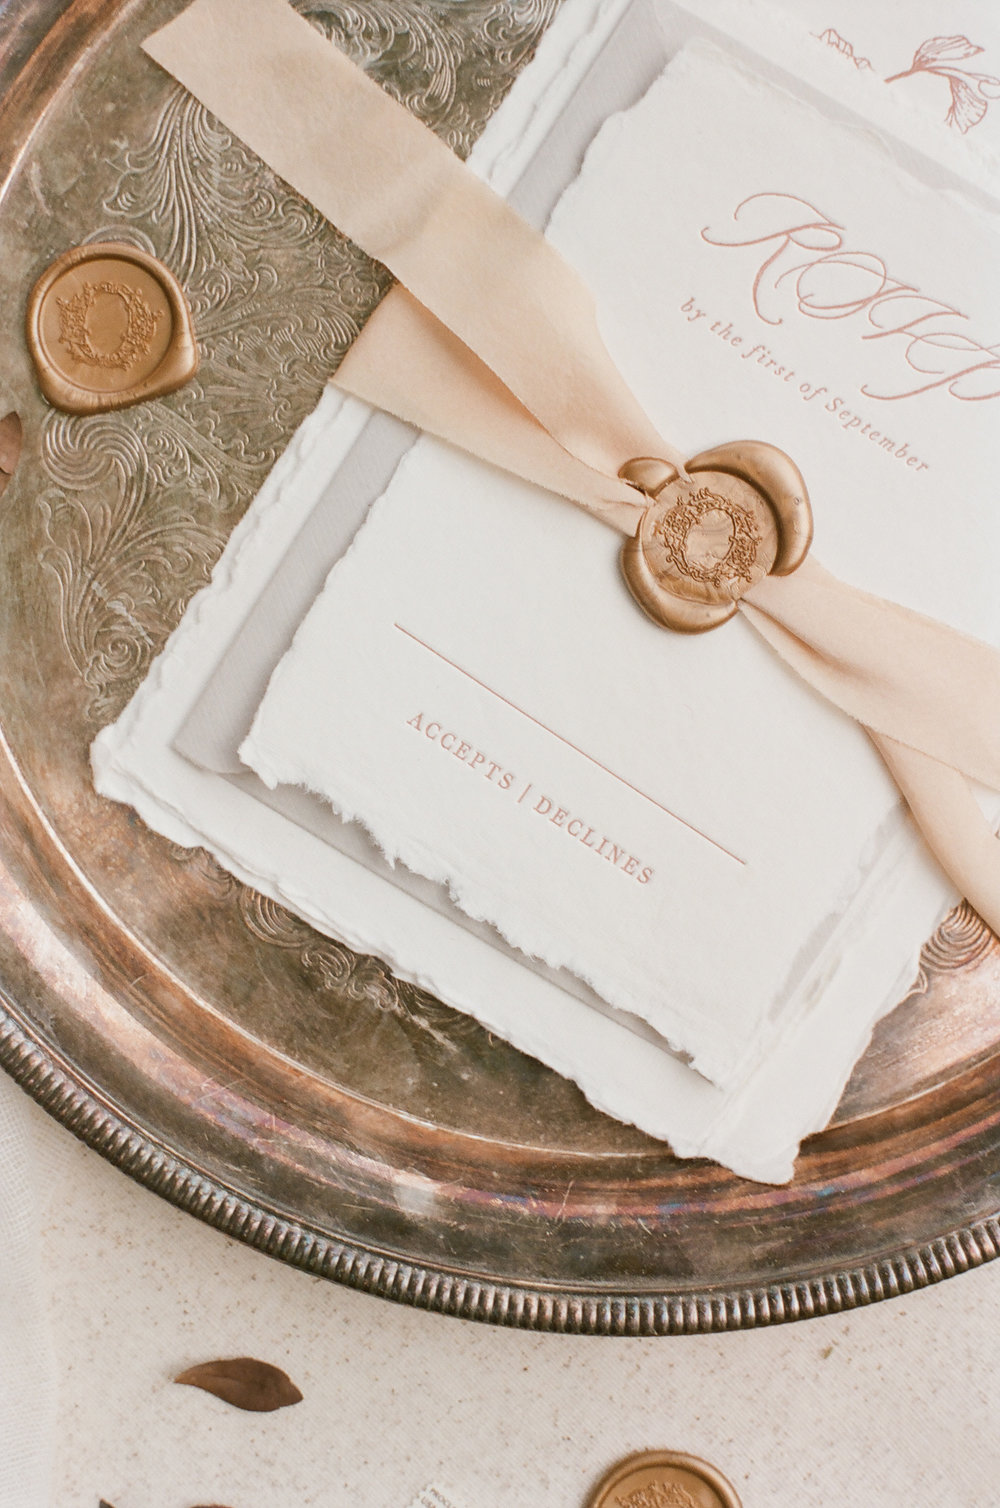 This wax seal design is so unique!  I love the intricate details!  Perfect for a fine art wedding invitaiton suite.  Find out more about this design and a few more favorite wax seal stamp designs by OTHER industry pros in my latest blog post! www.BlushedDesign.com #waxseals #waxsealstamp #theartisaireway #artisaire